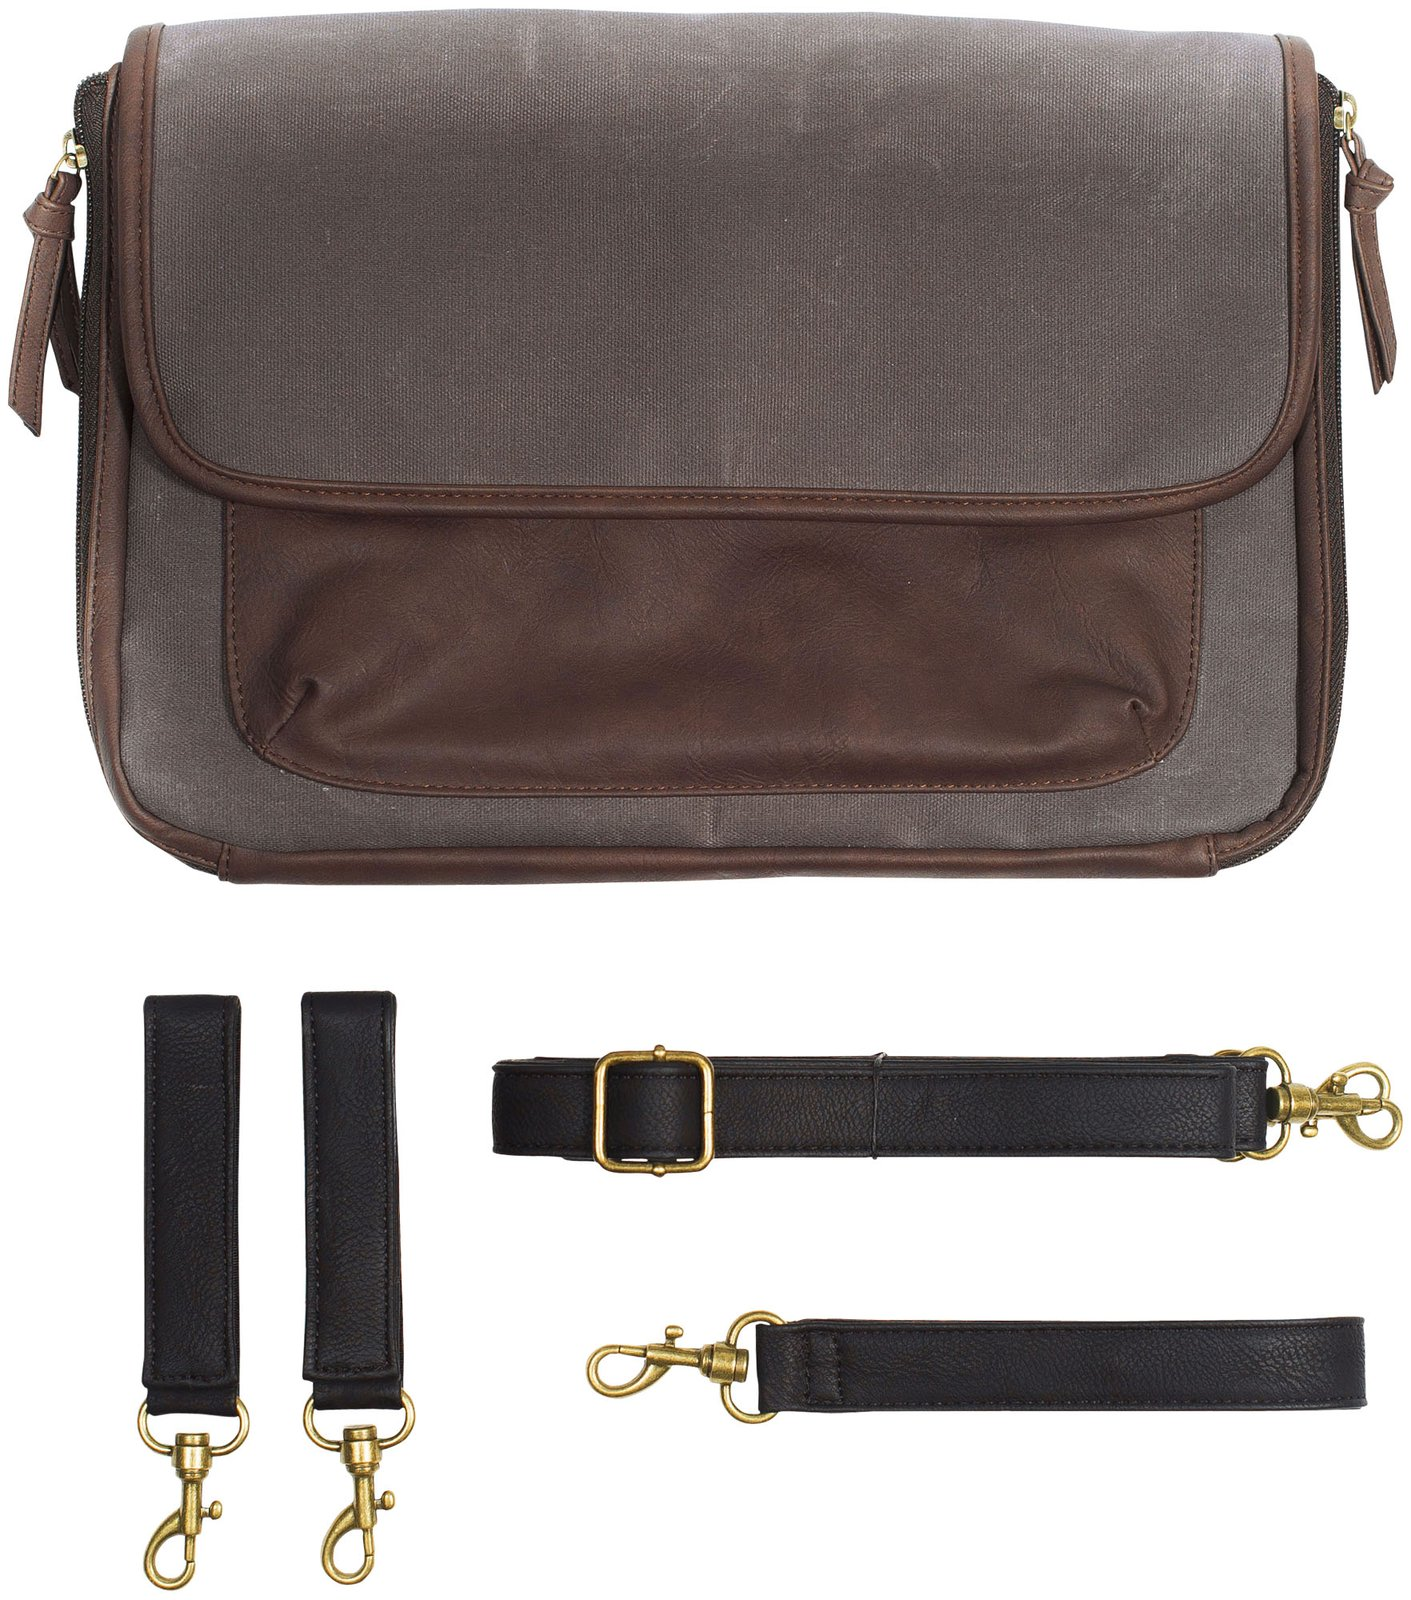 SoYoung Sydney Lifestyle Diaper Bag